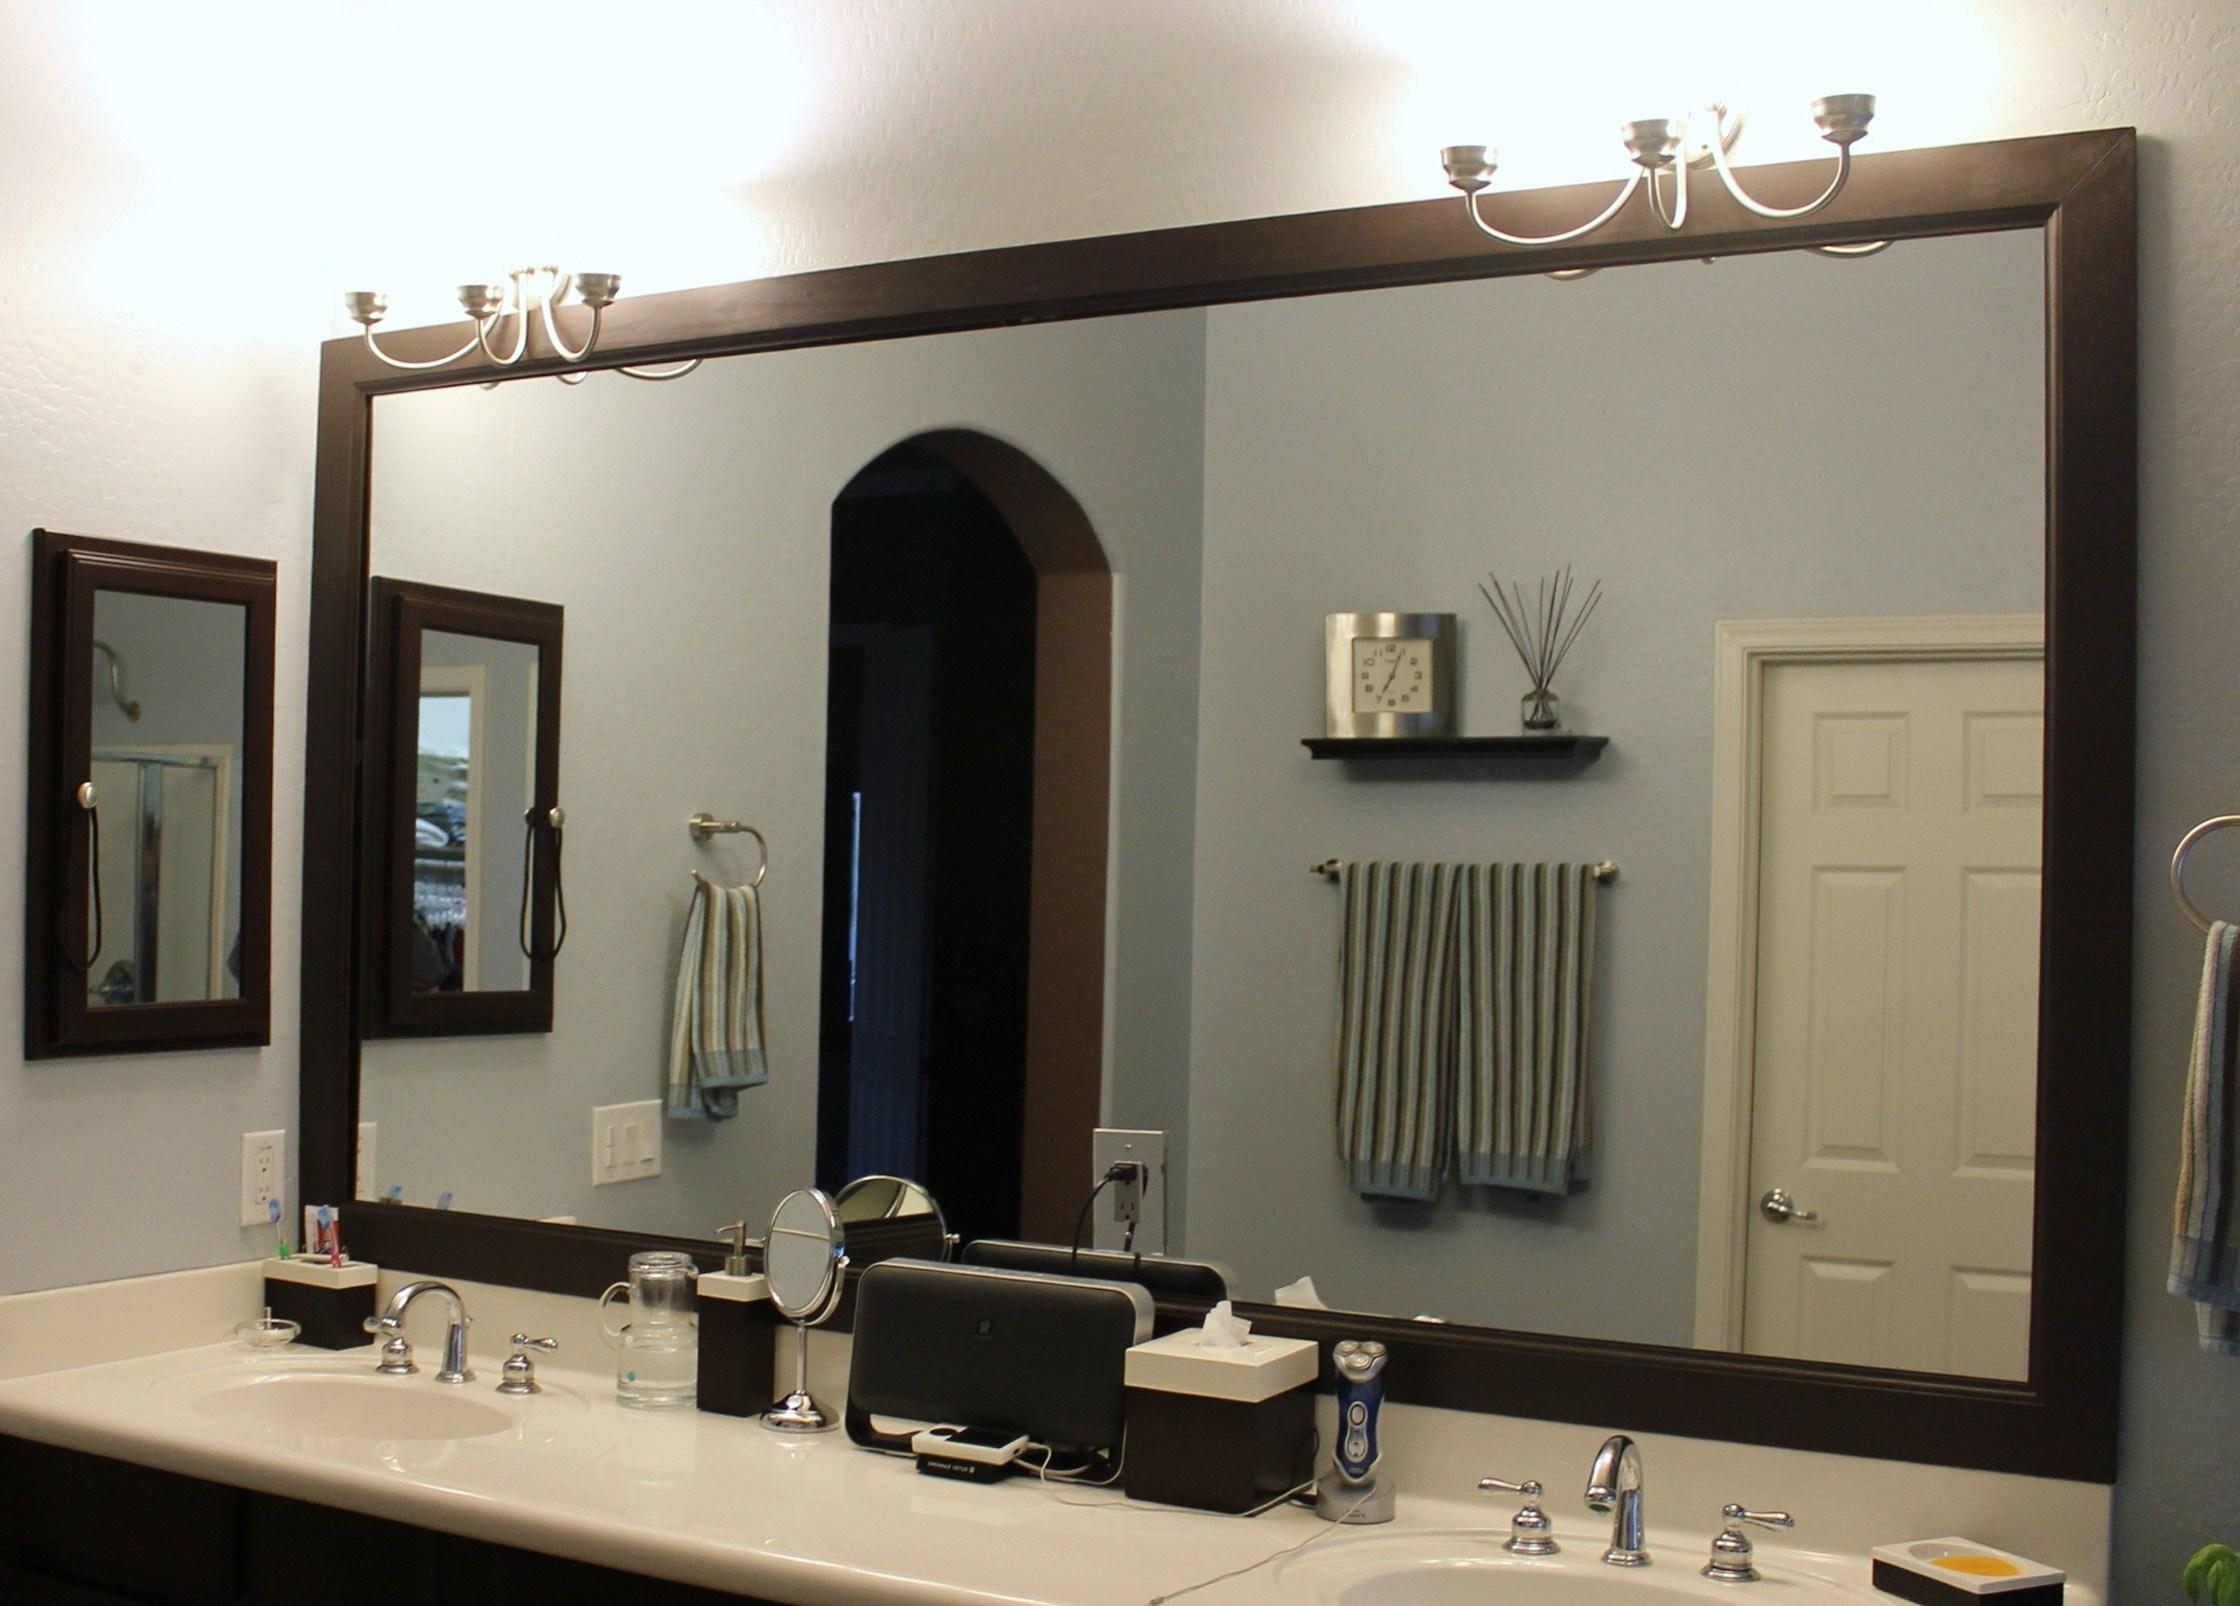 Bathroom : Beautiful Bathroom Mirror Ideas For A Small Bathroom Intended For Decorative Mirrors For Bathroom Vanity (View 12 of 20)